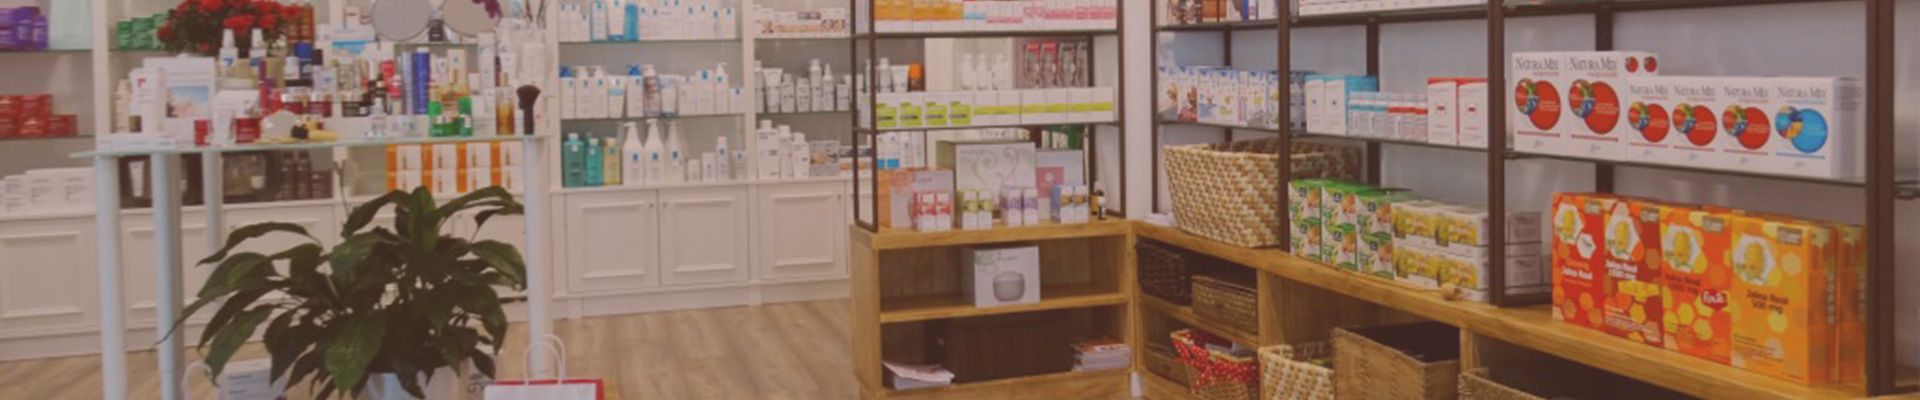 reformas farmacias madrid